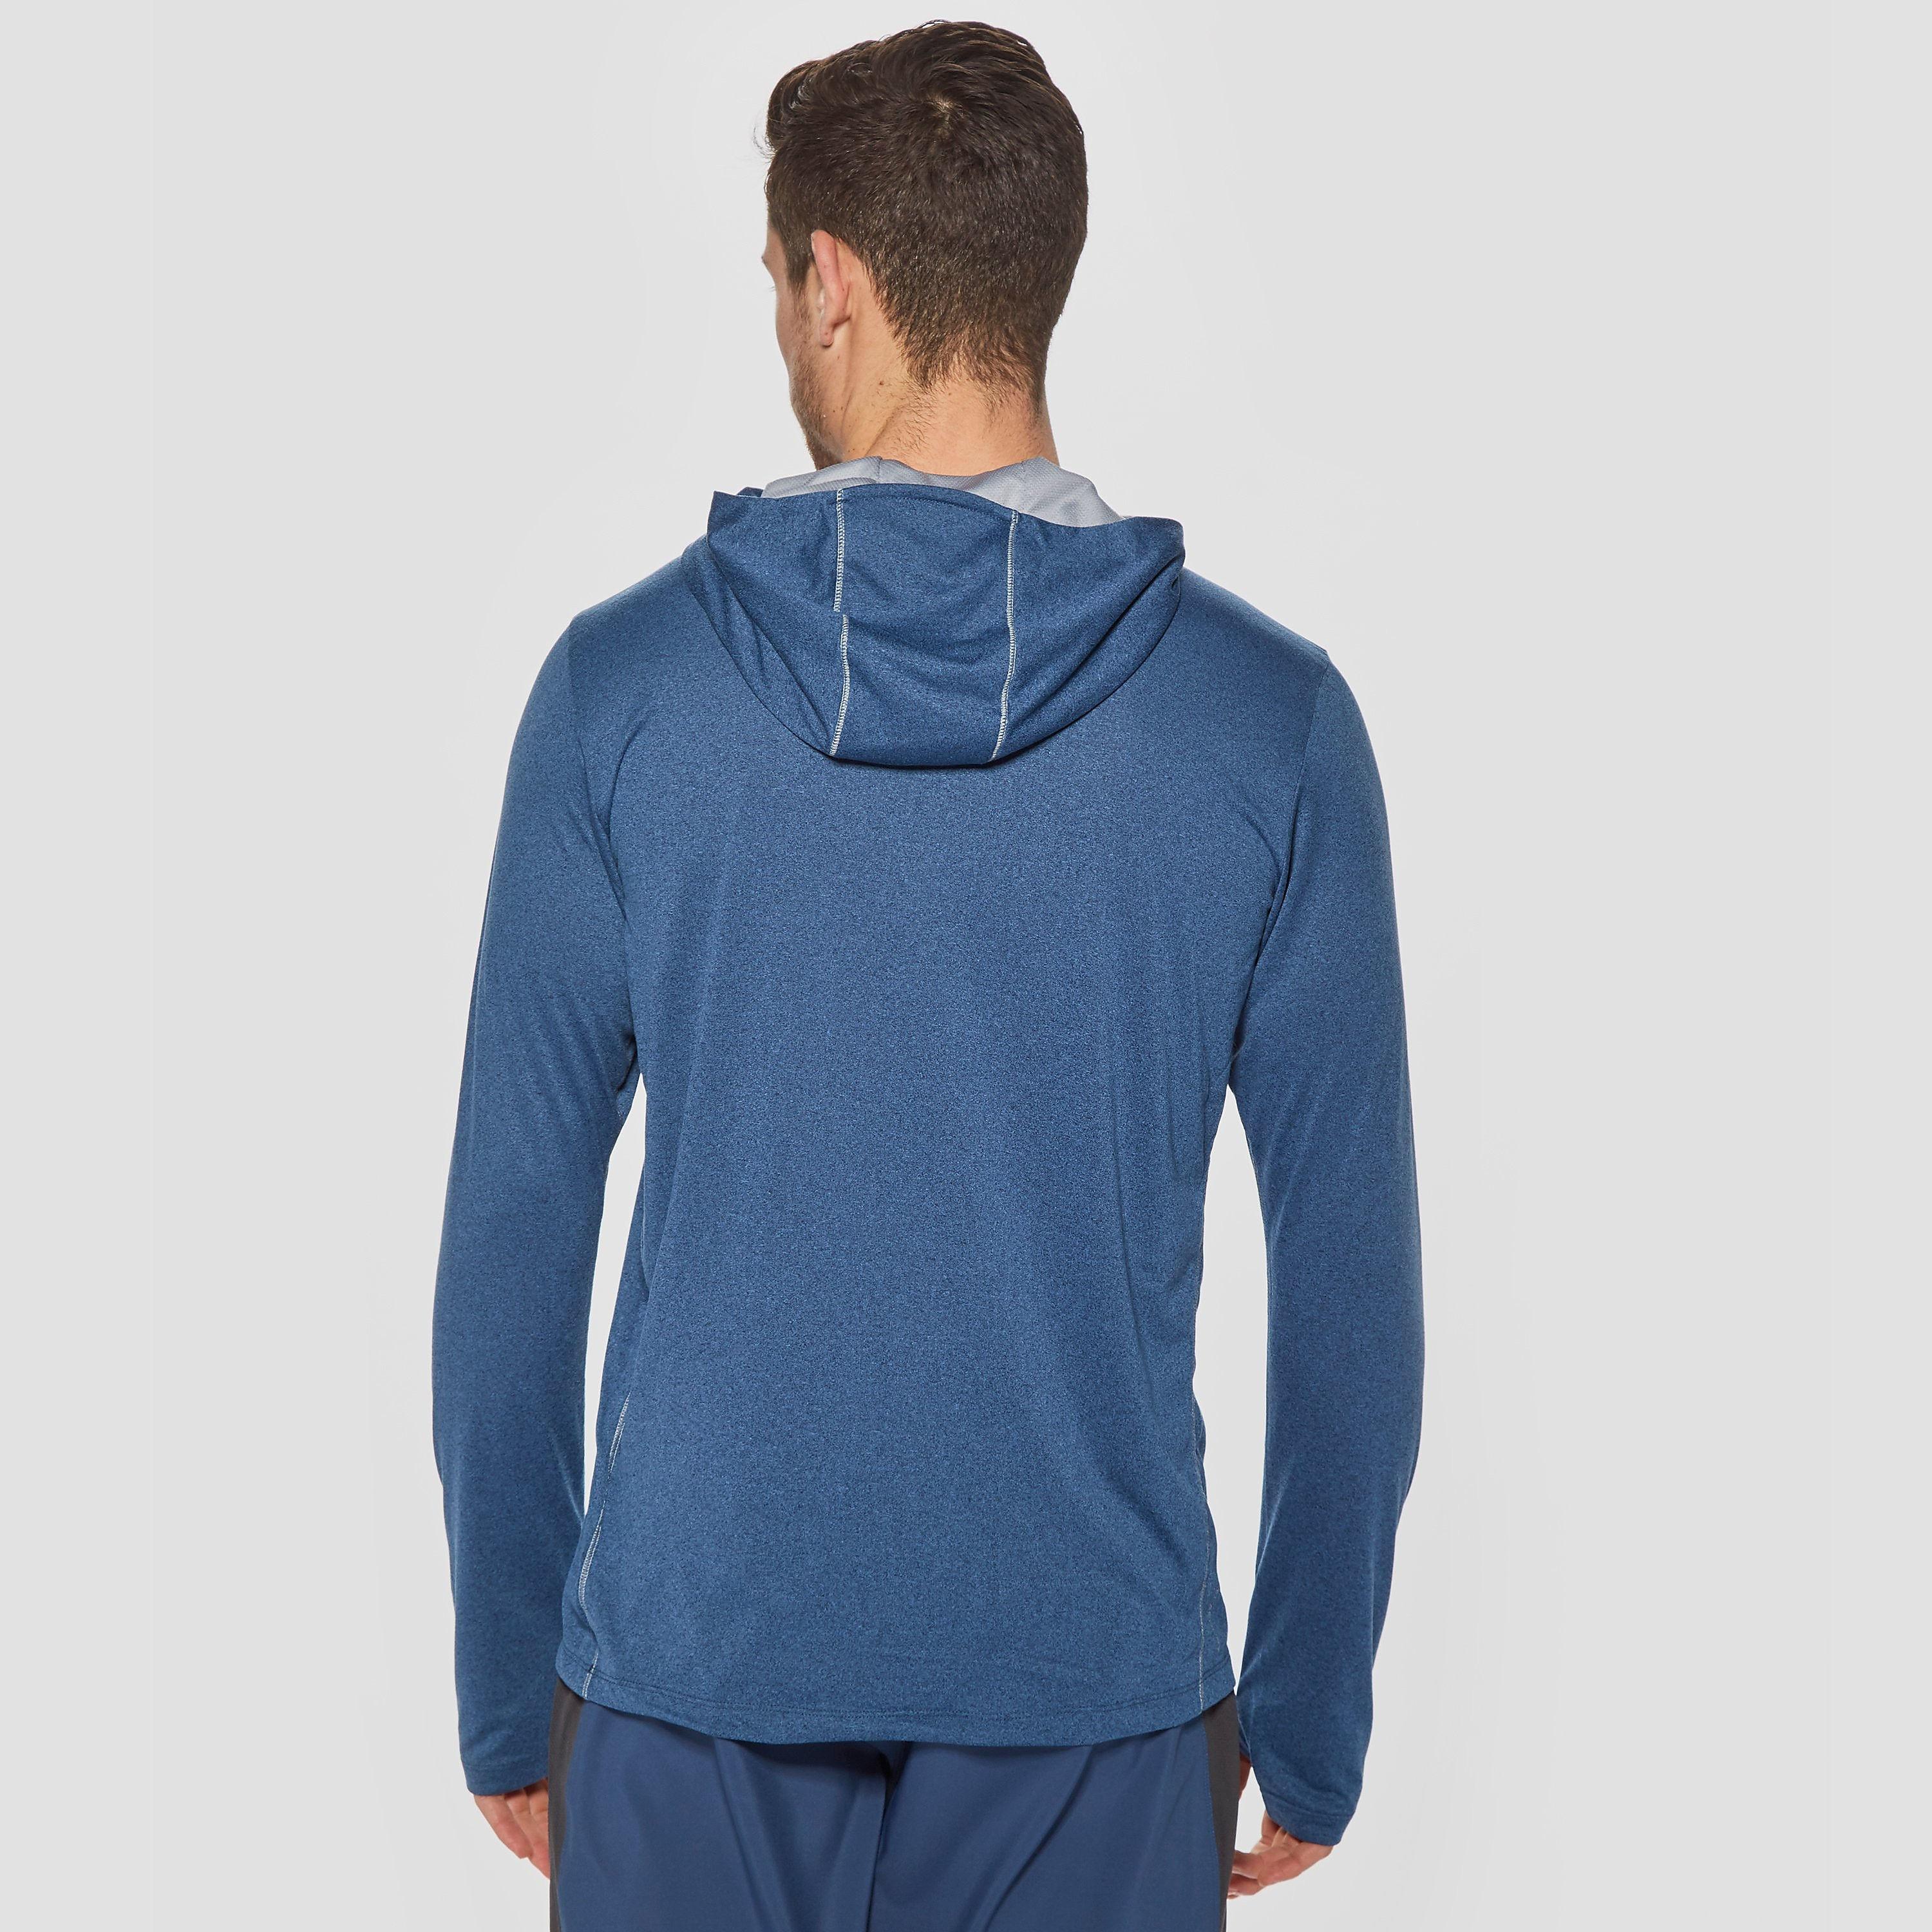 The North Face Reactor Men's Sweater